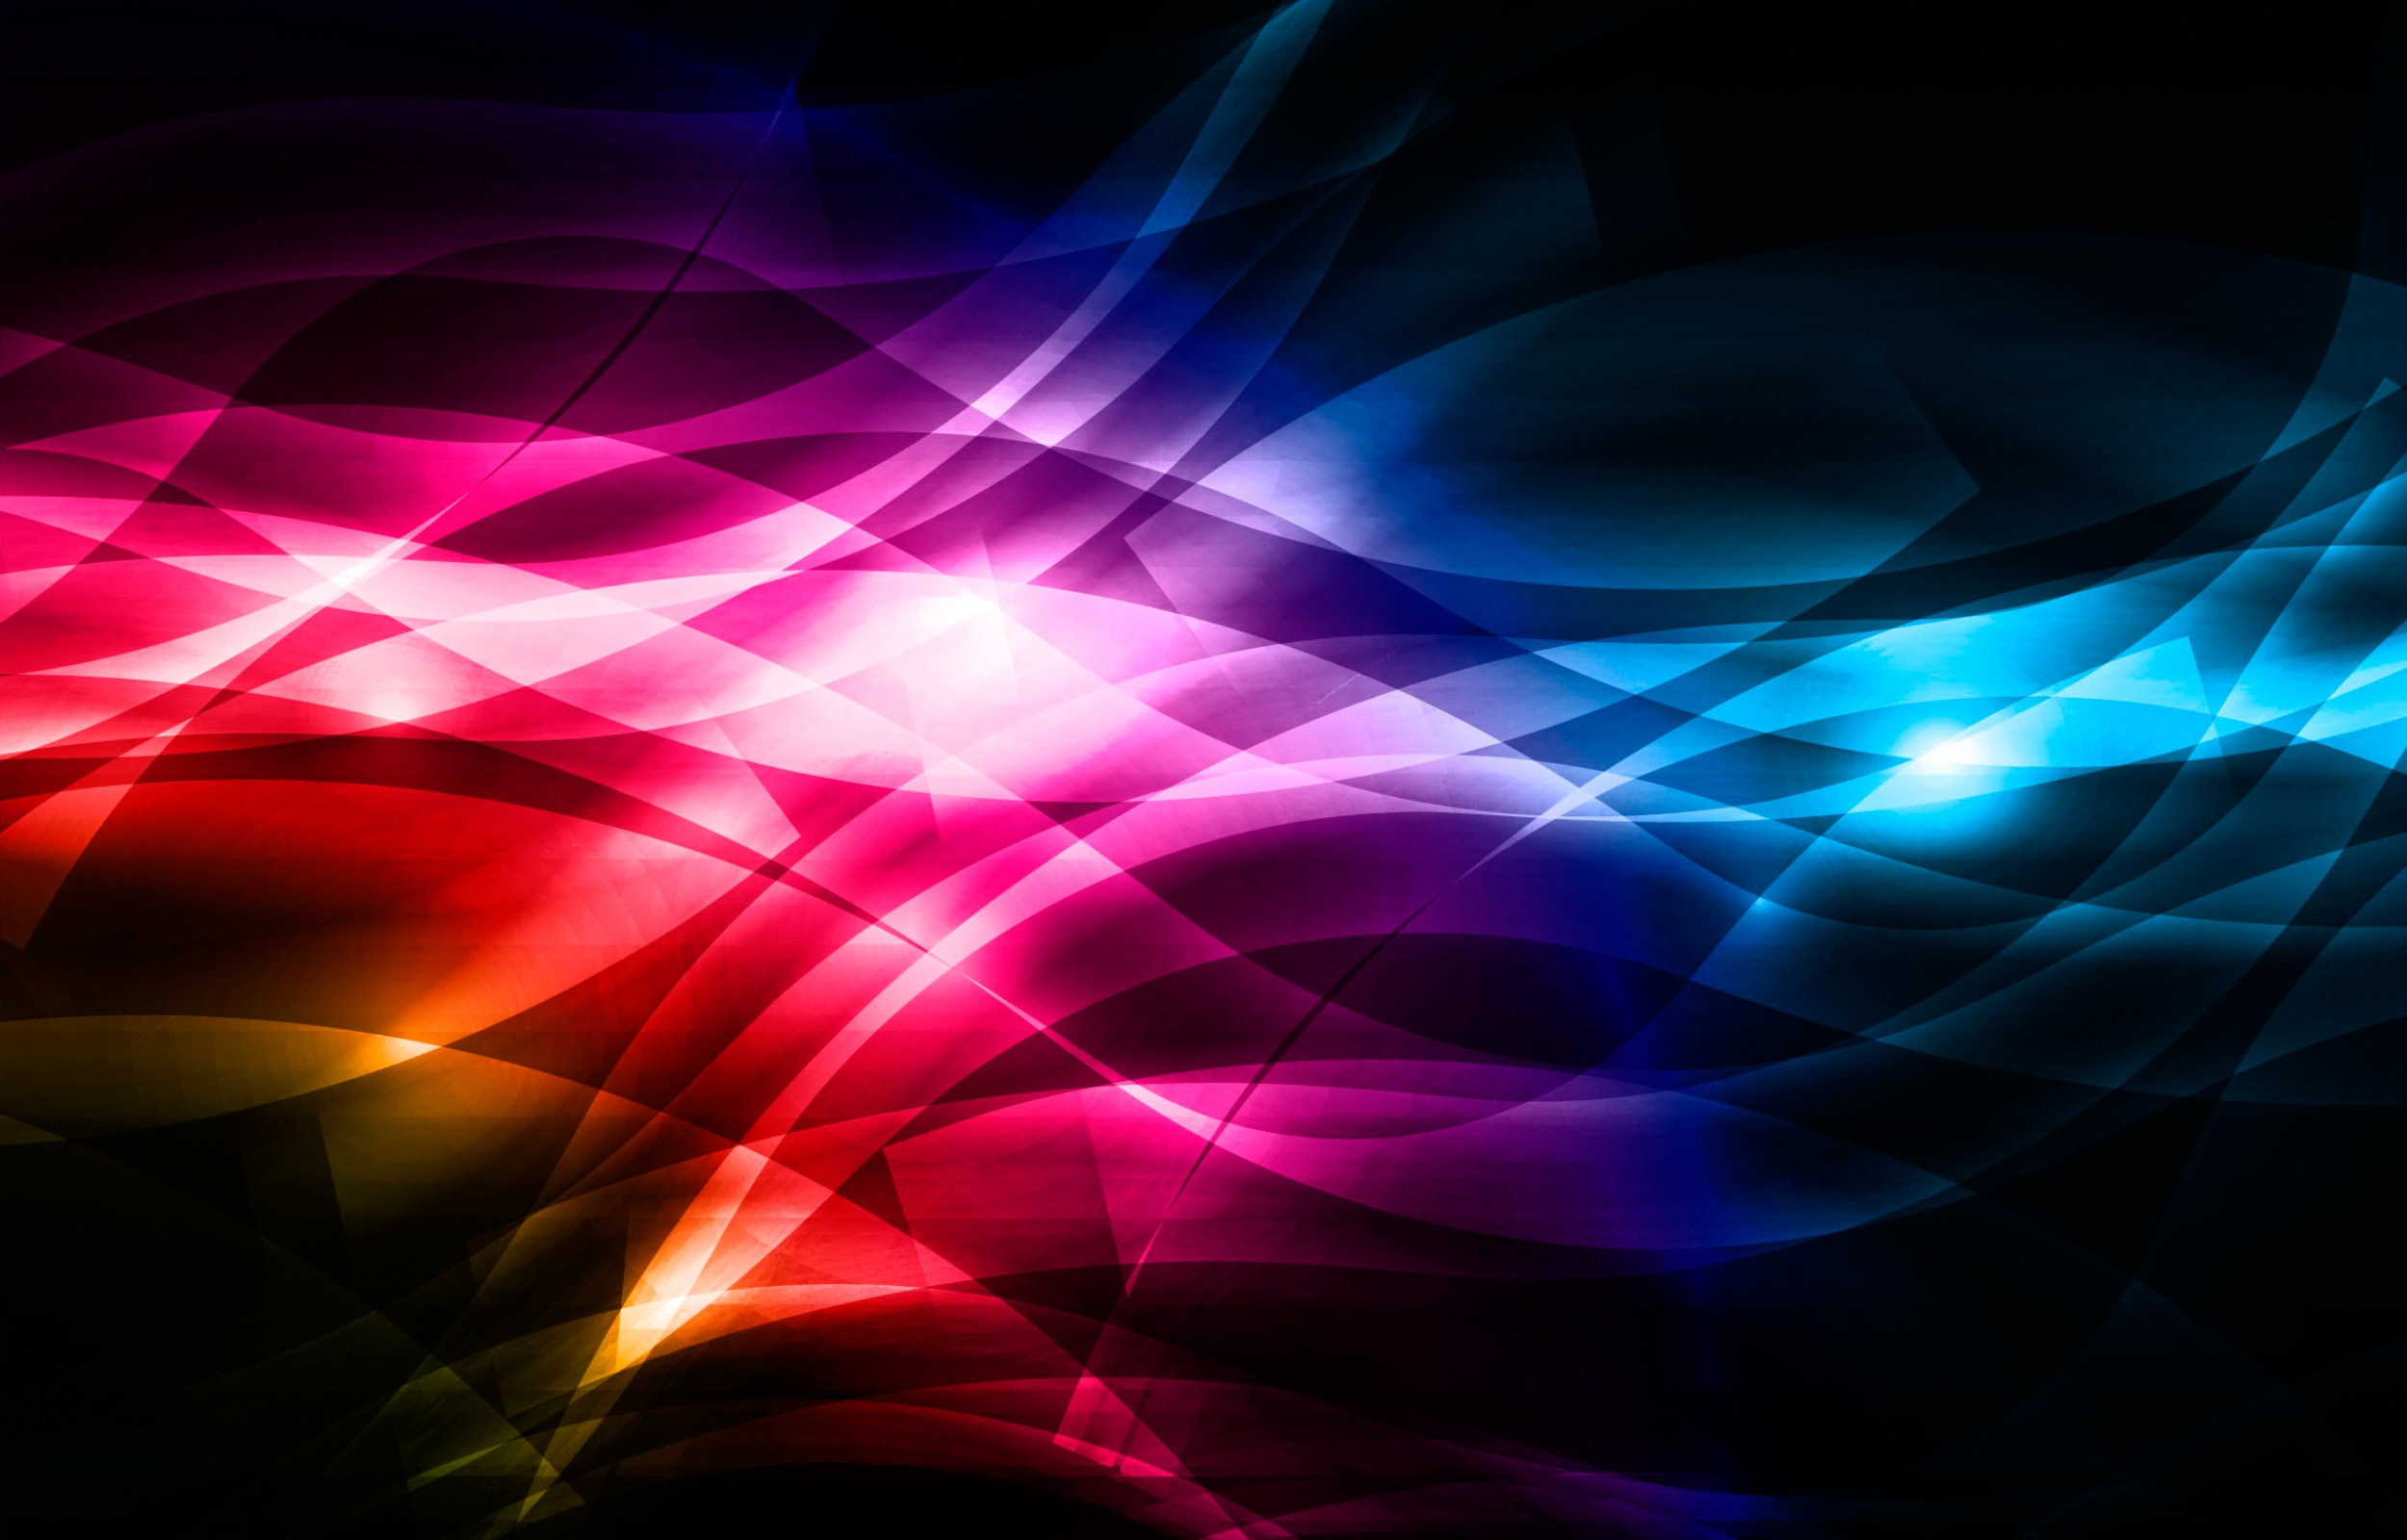 Abstract Colorful Background 2500x1600 2212 HD Wallpaper 2500x1600